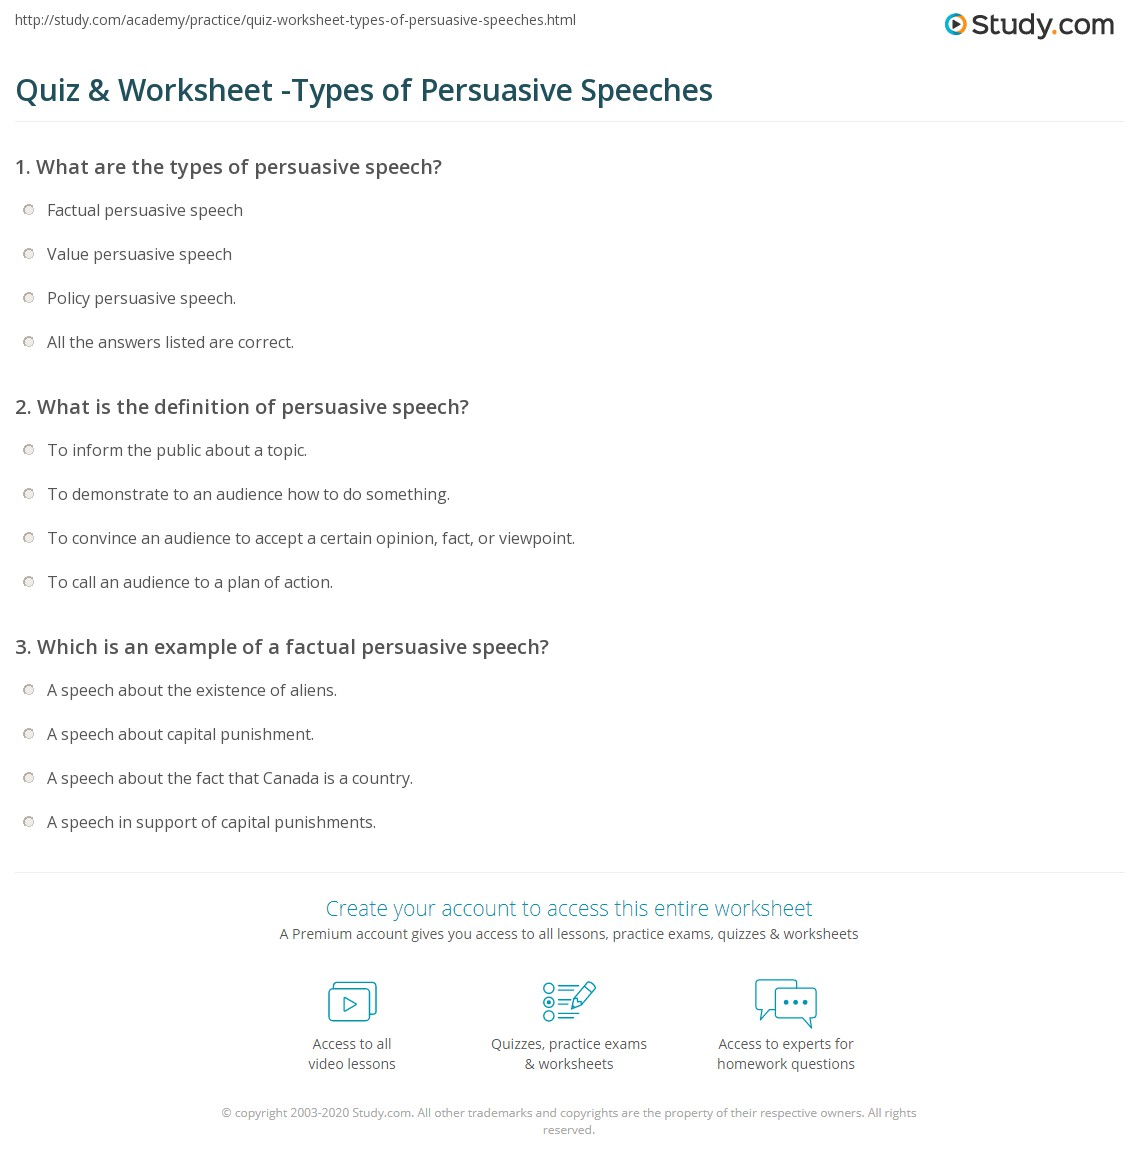 guidelines for persuasive speaking